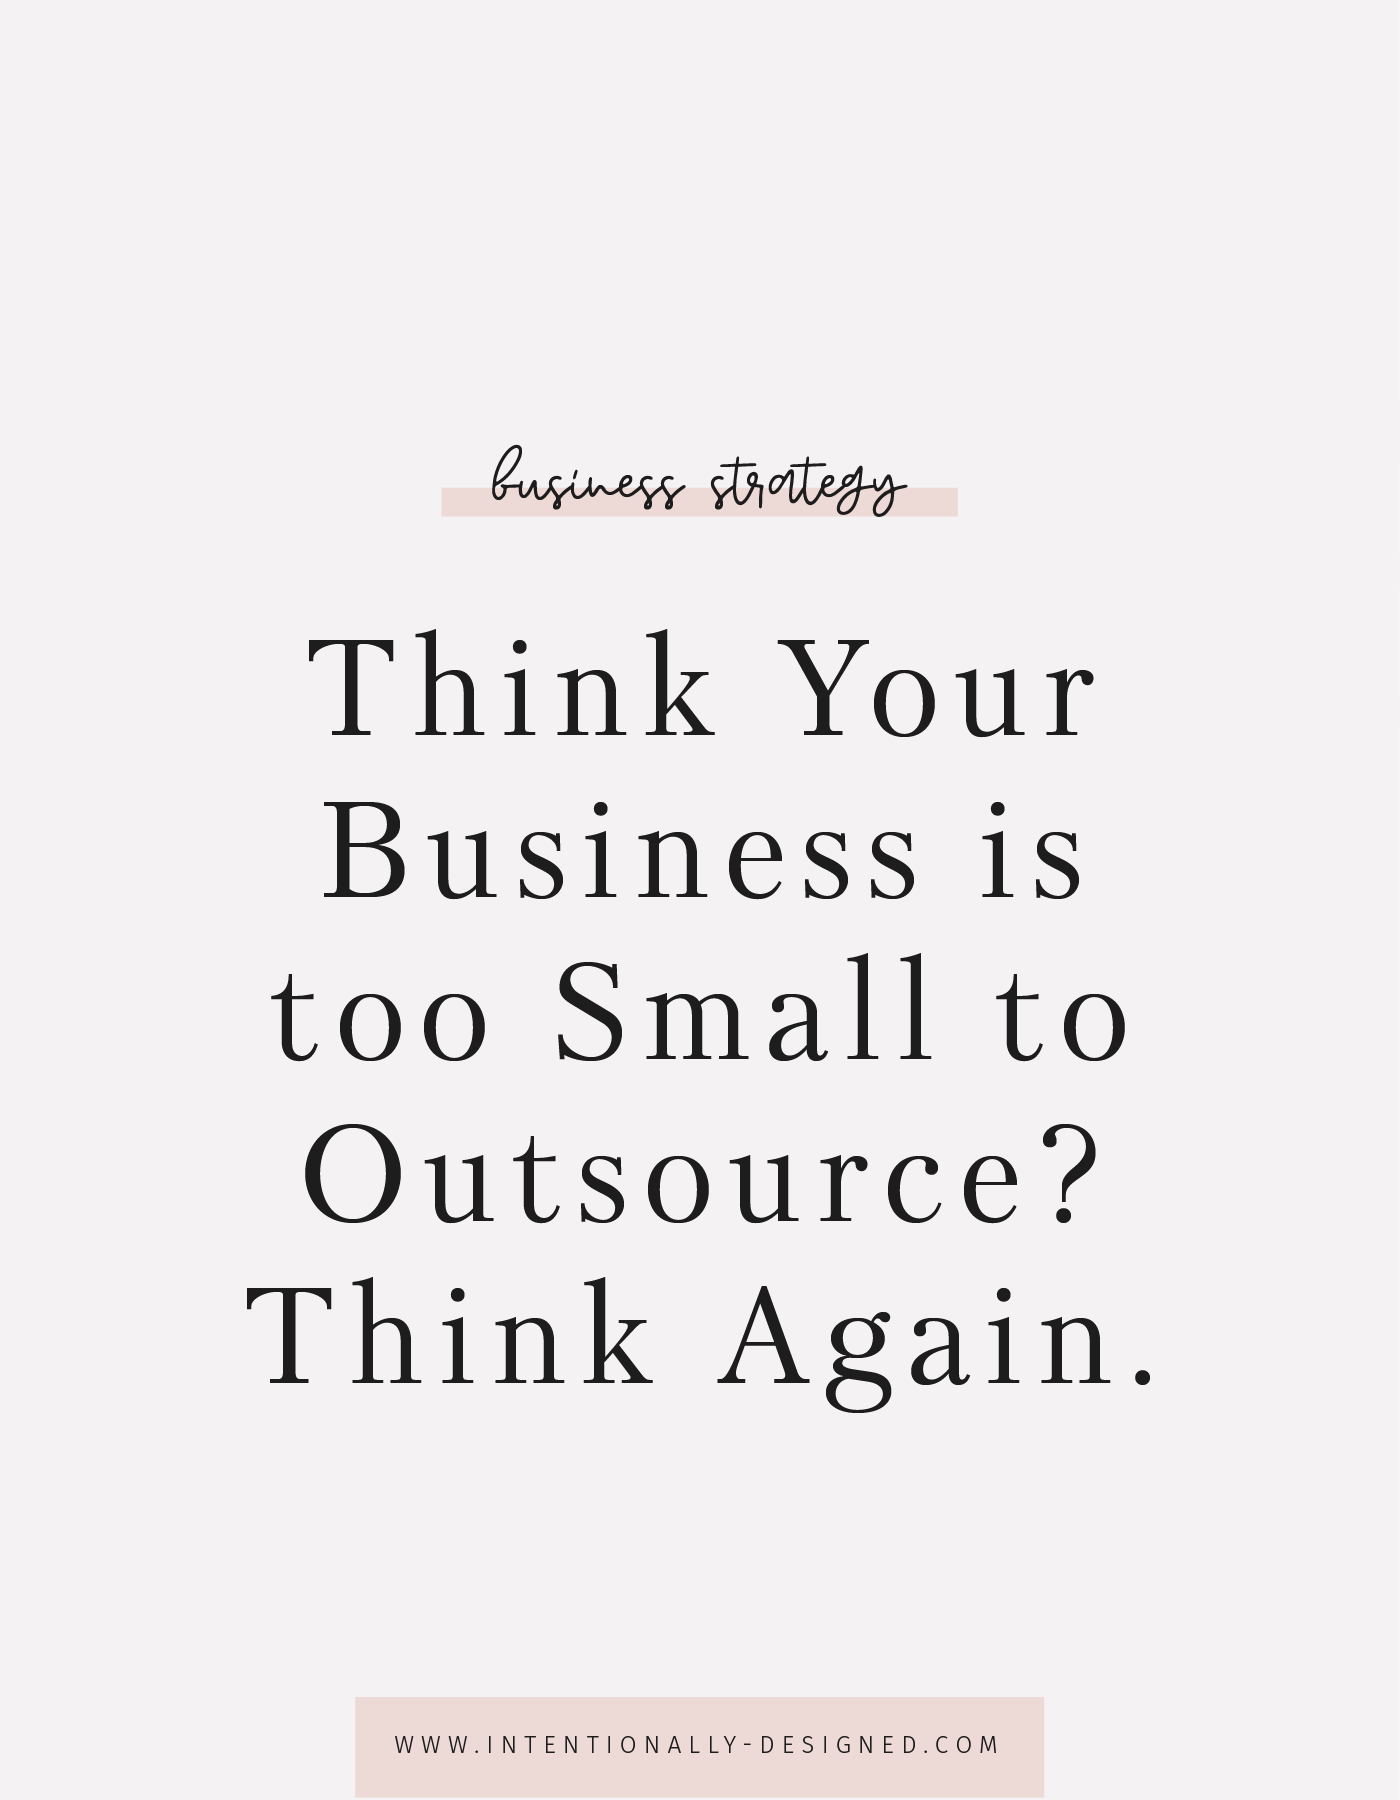 Think Your Business is too Small to Outsource? Think Again.